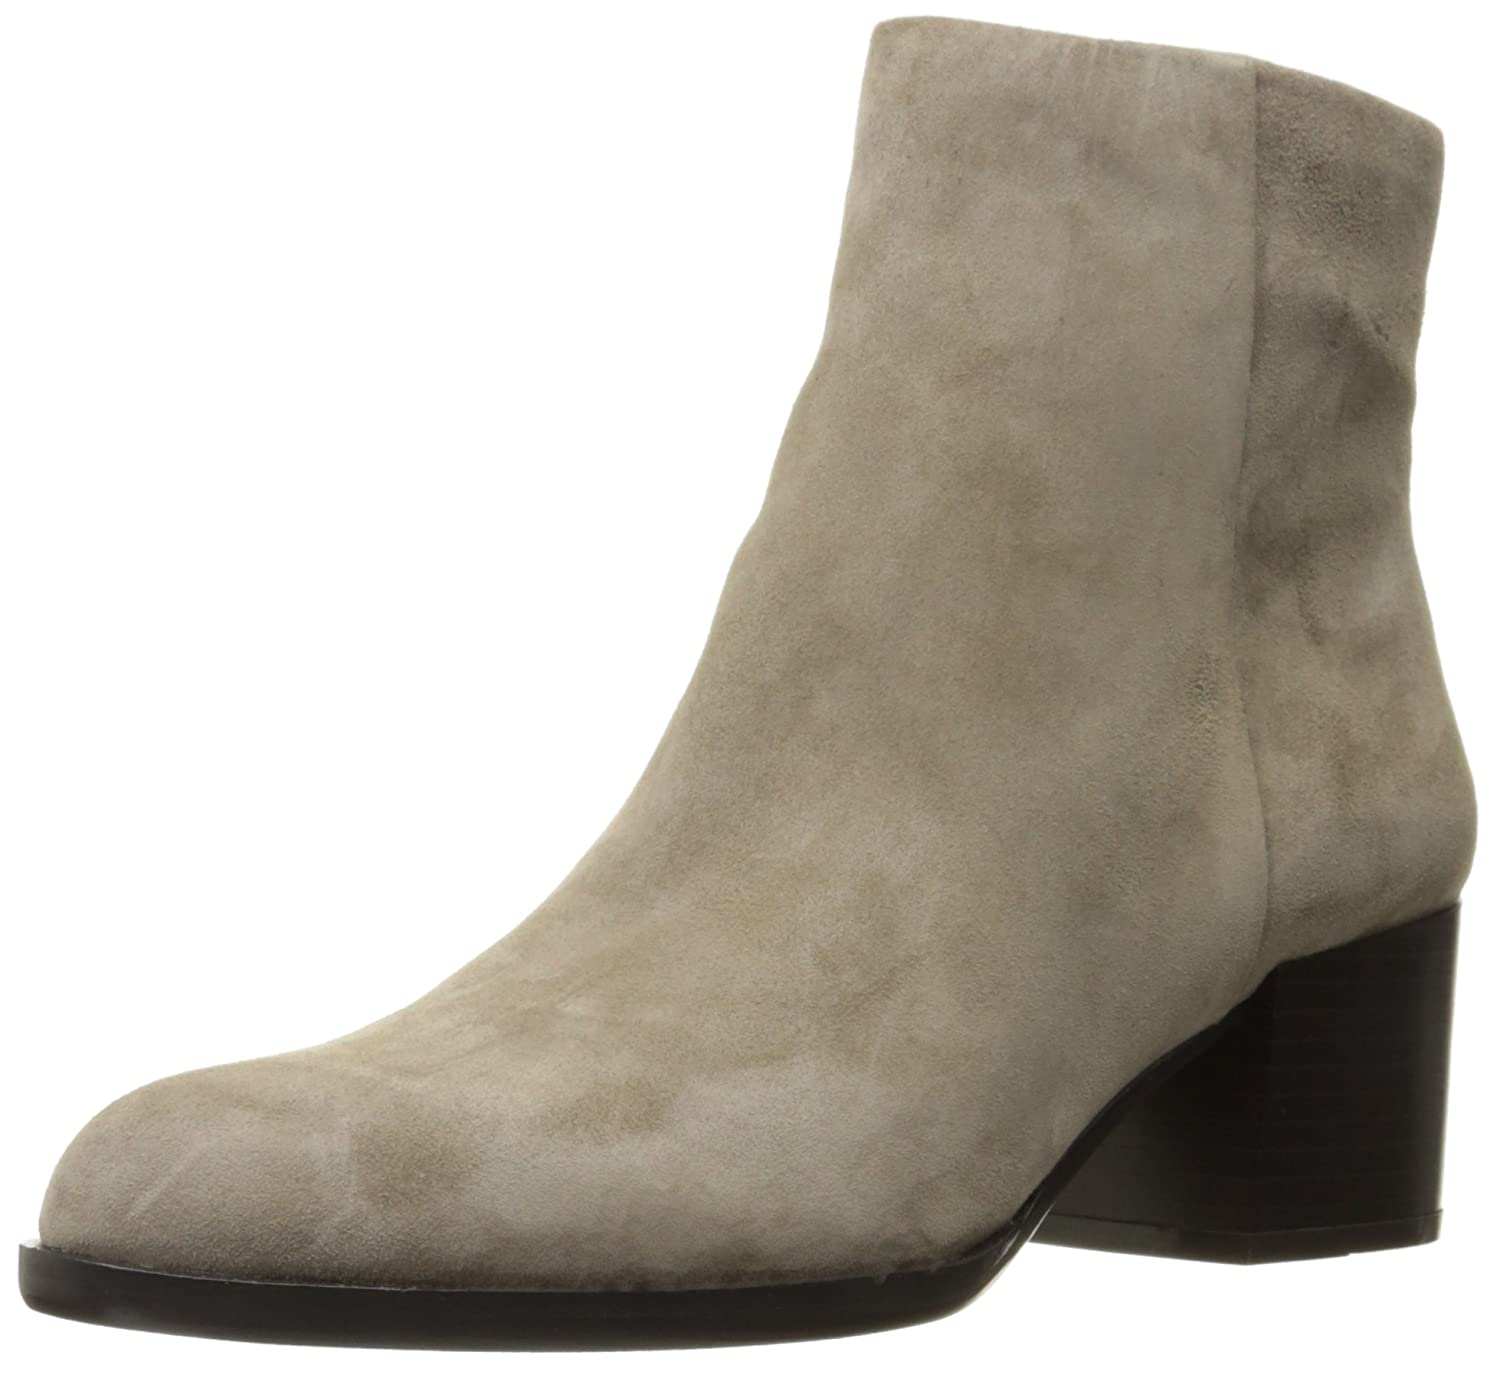 Sam Edelman Women's Joey Boot B01AYGBB8E 7 B(M) US|Putty